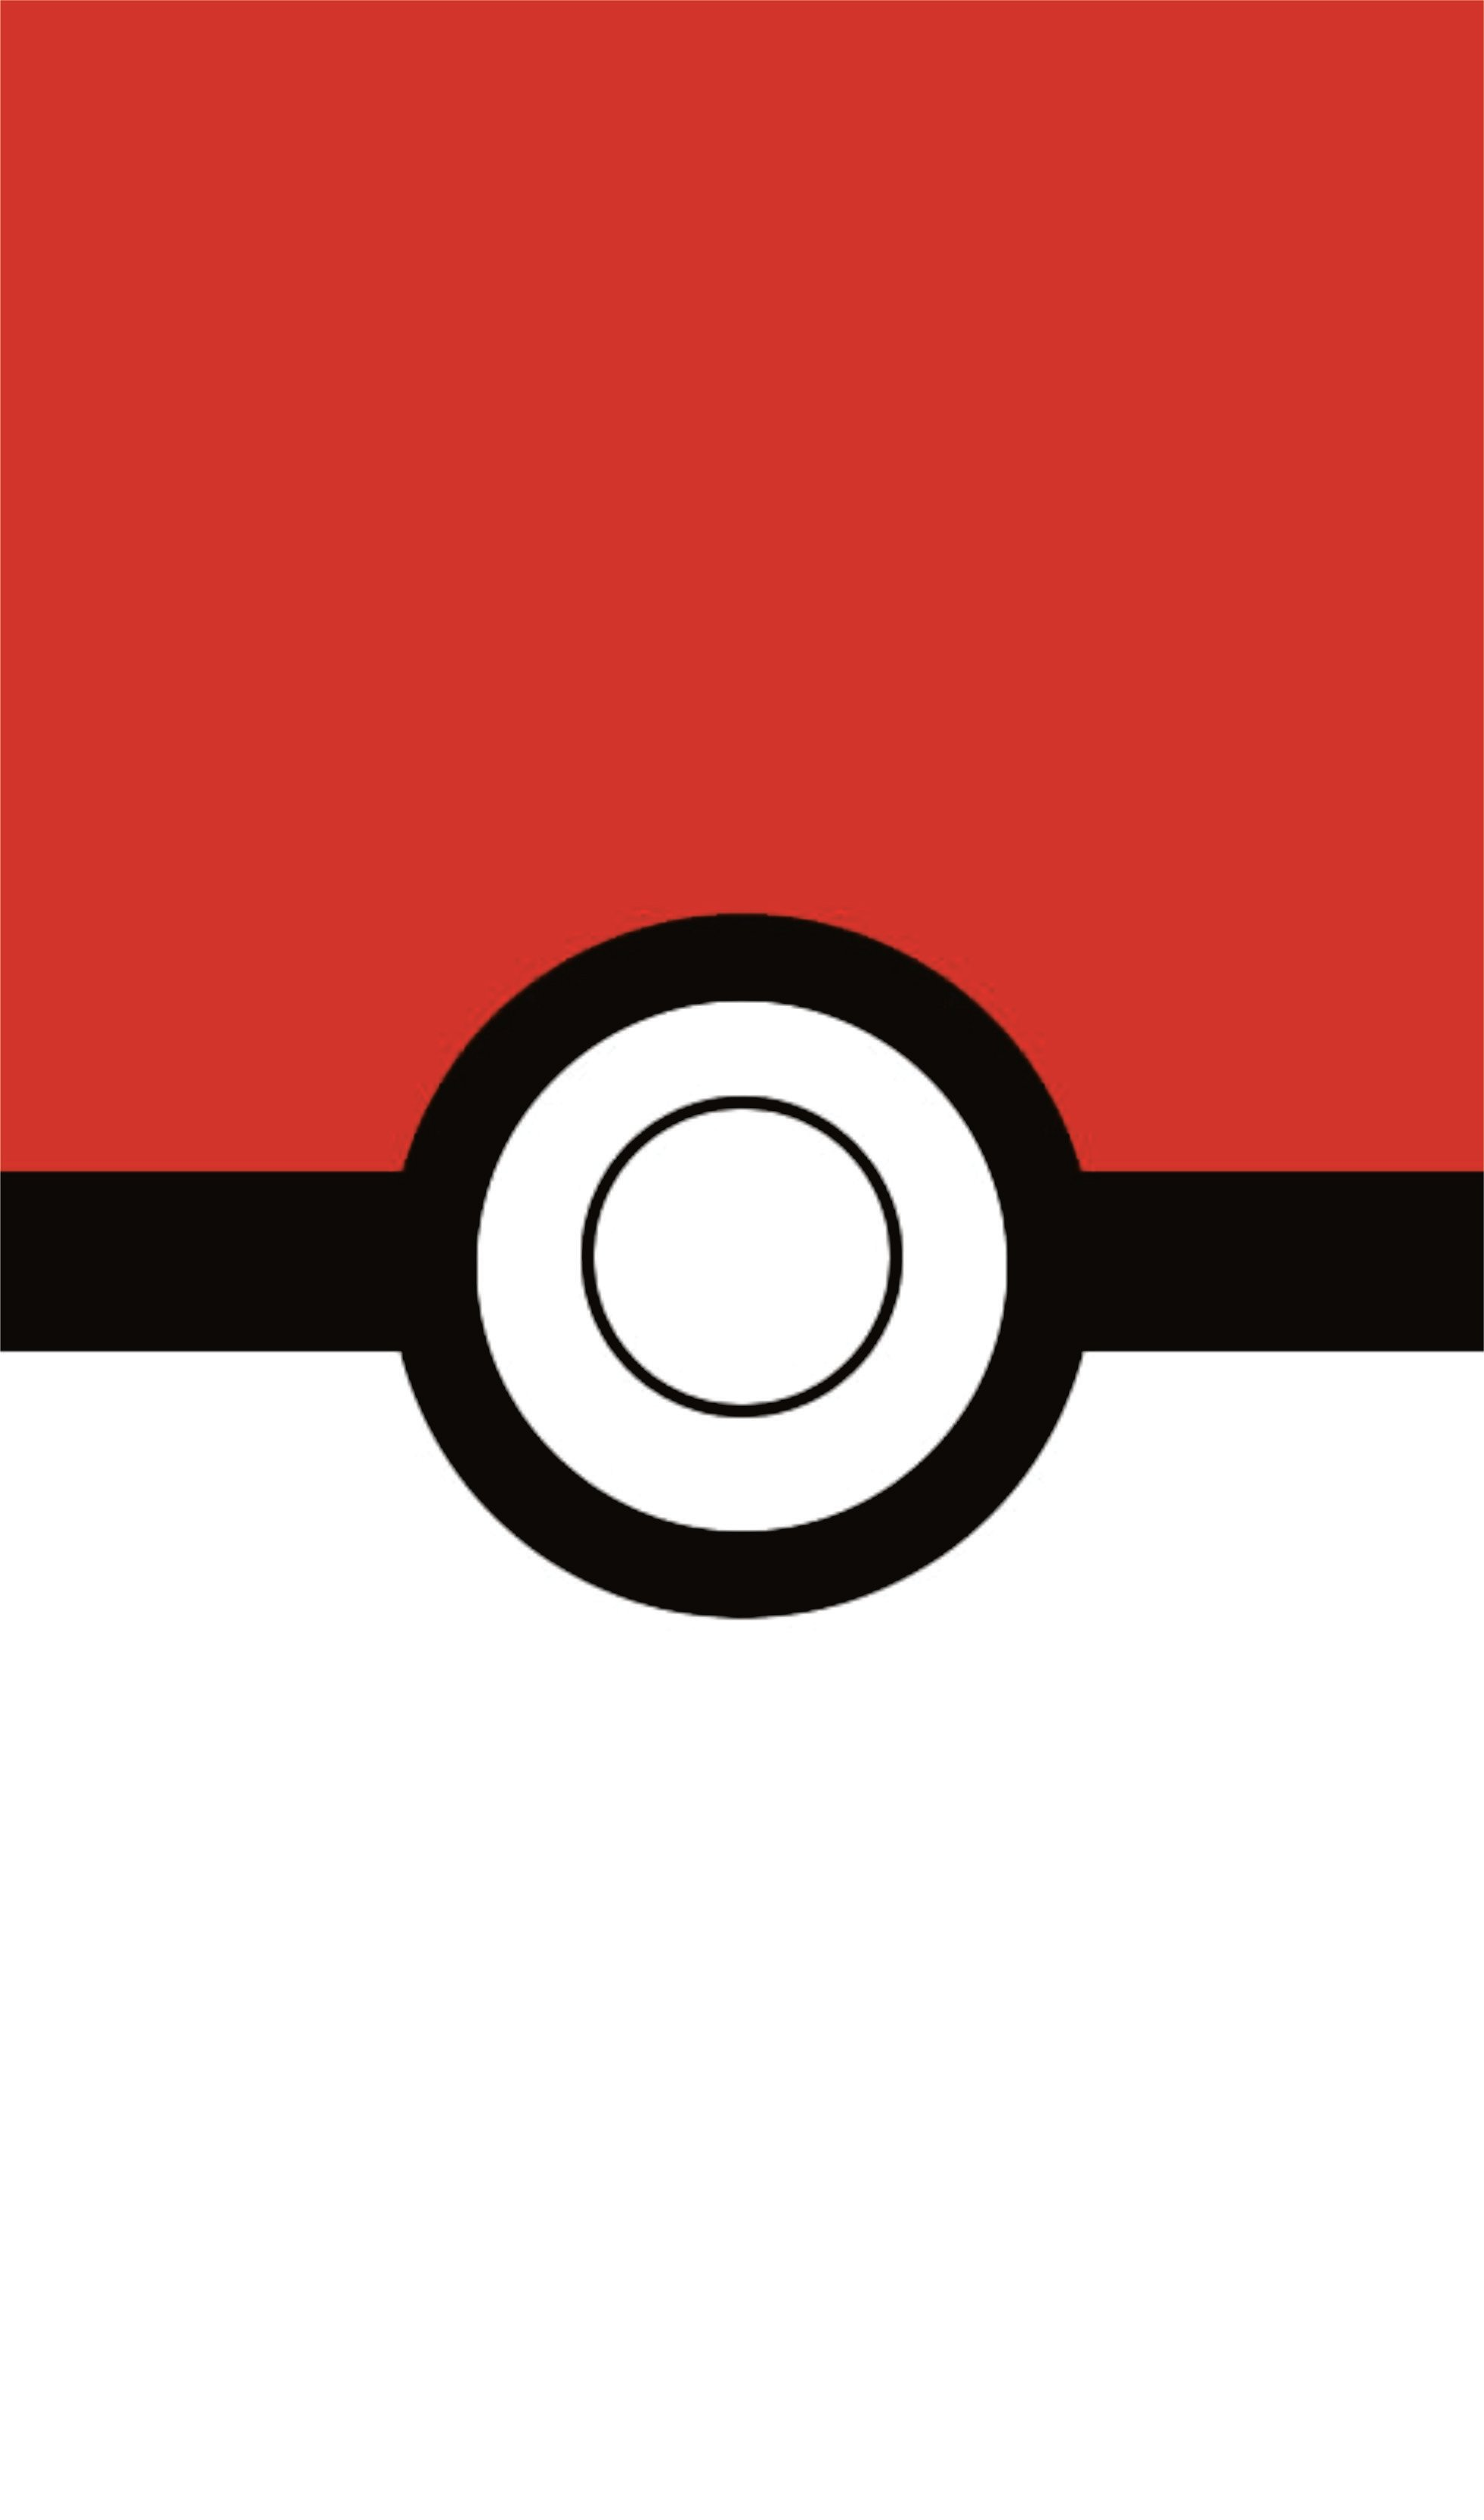 Pokeball Iphone Wallpapers Top Free Pokeball Iphone Backgrounds Wallpaperaccess